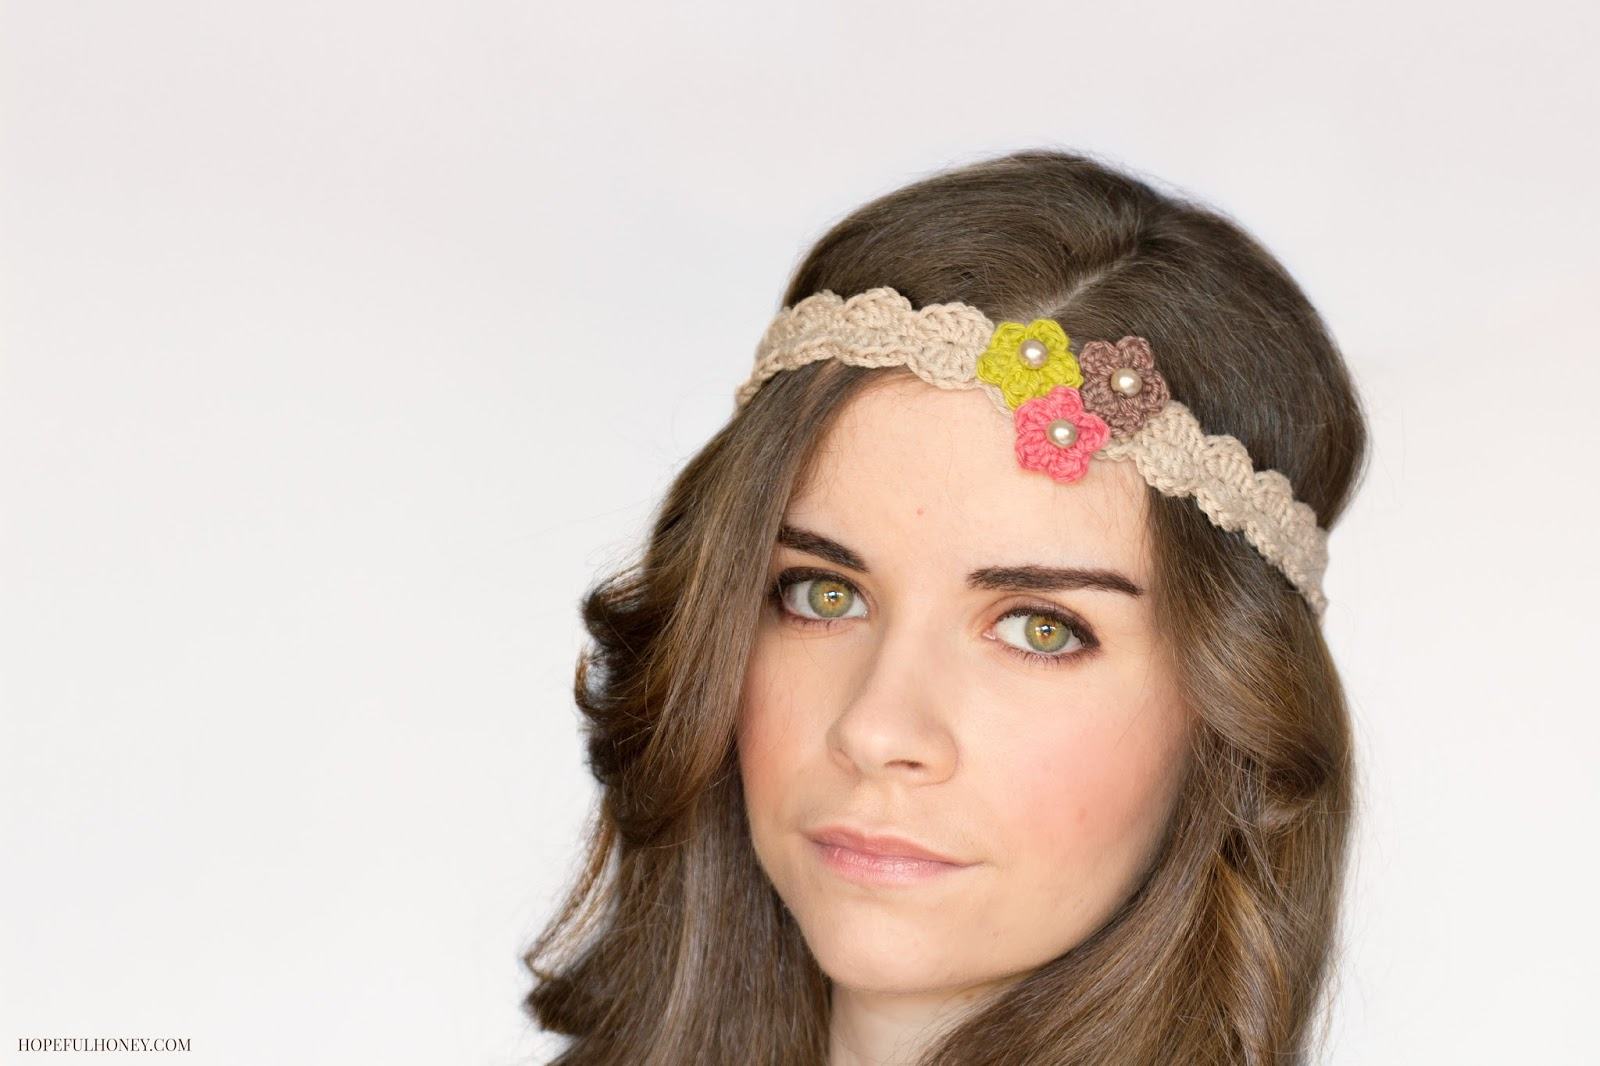 Crochet beautiful headbands for your little girl with headband crochet patterns